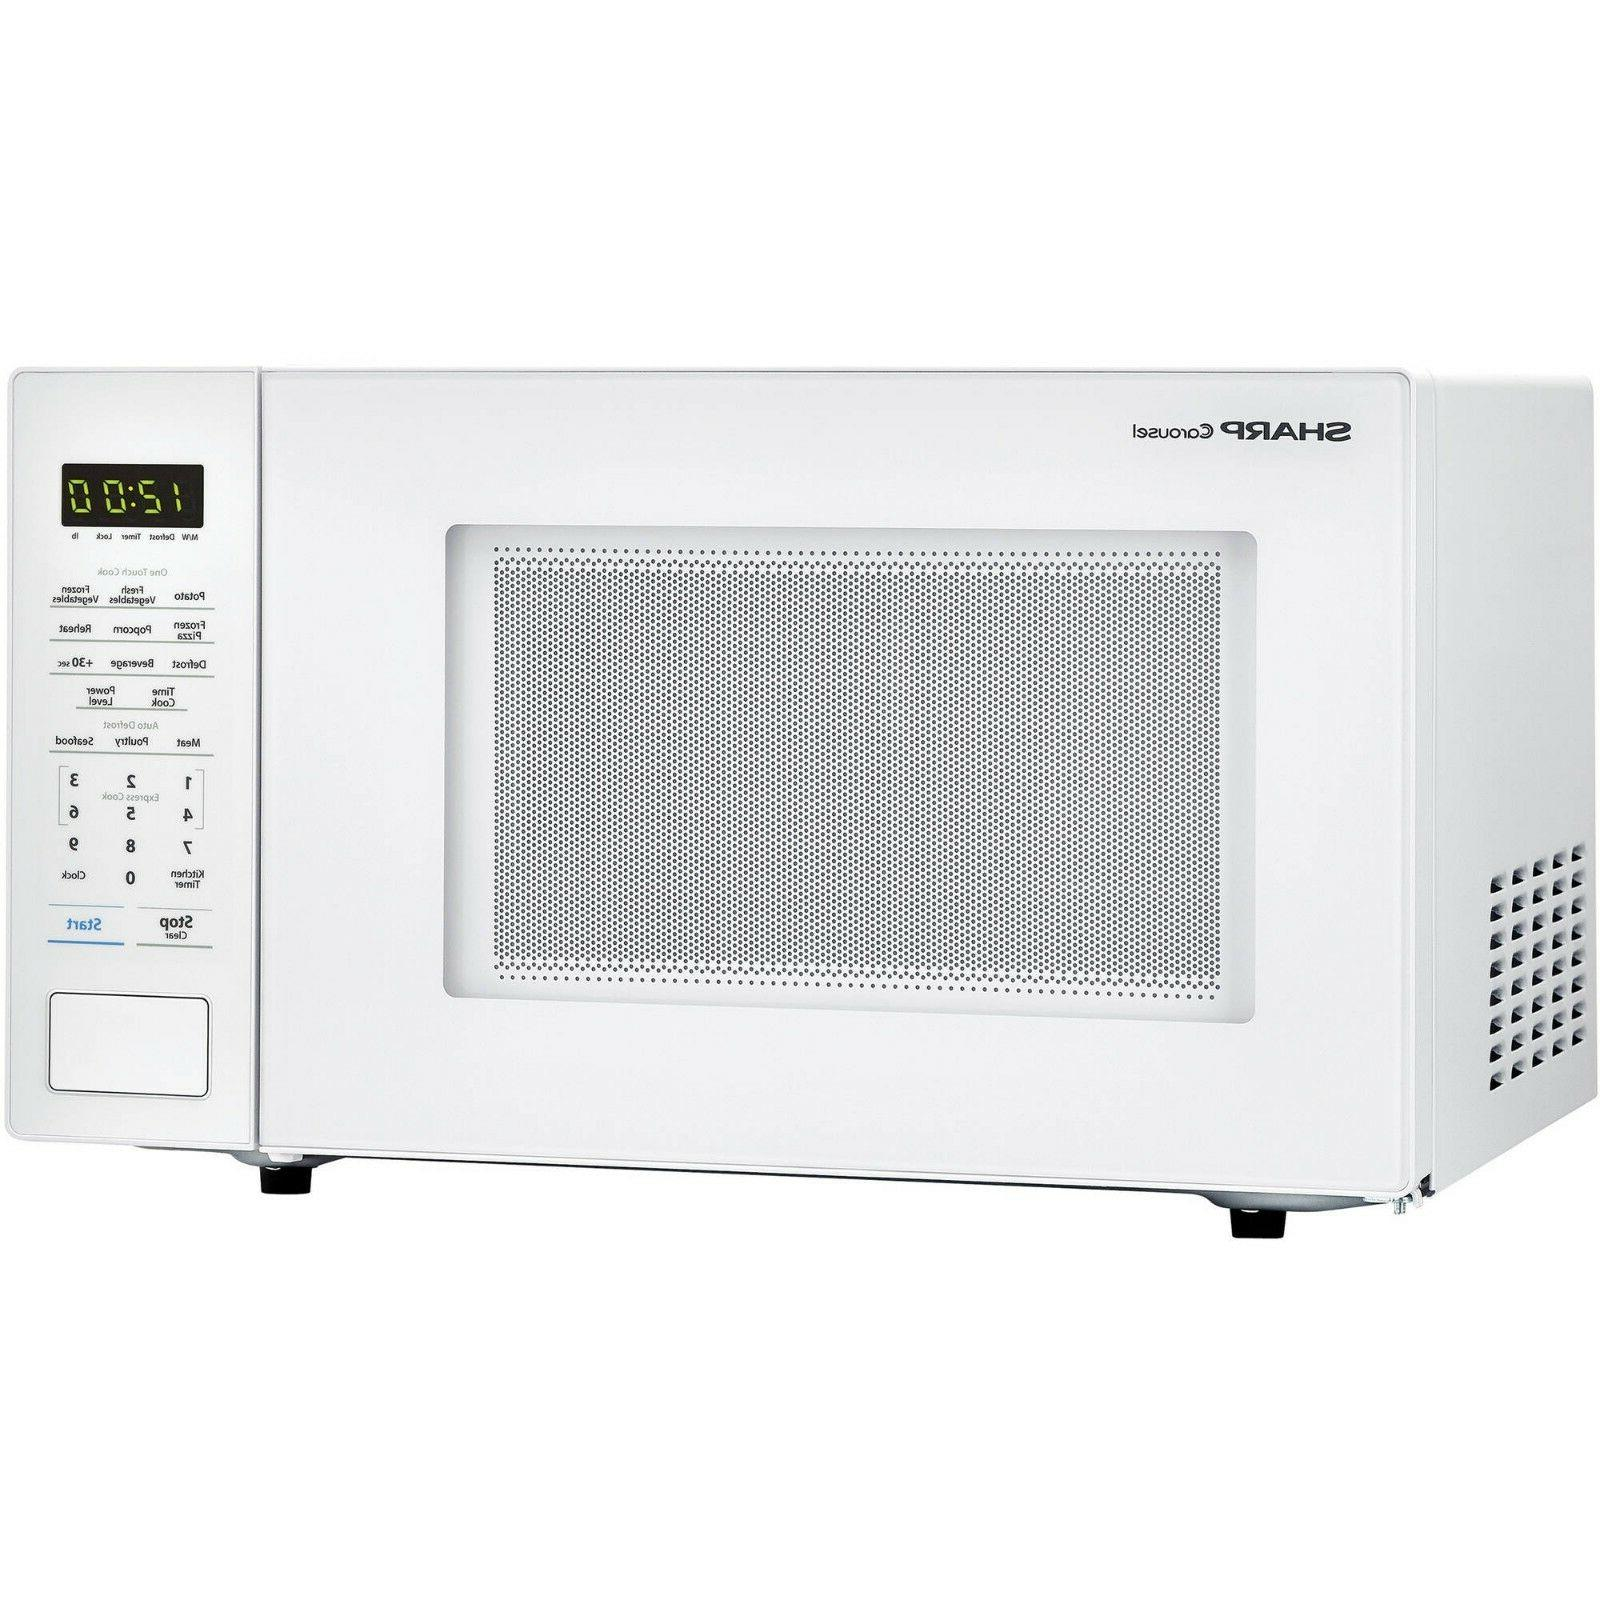 Sharp Zsmc1131cw 1,000w Microwave Oven Foot